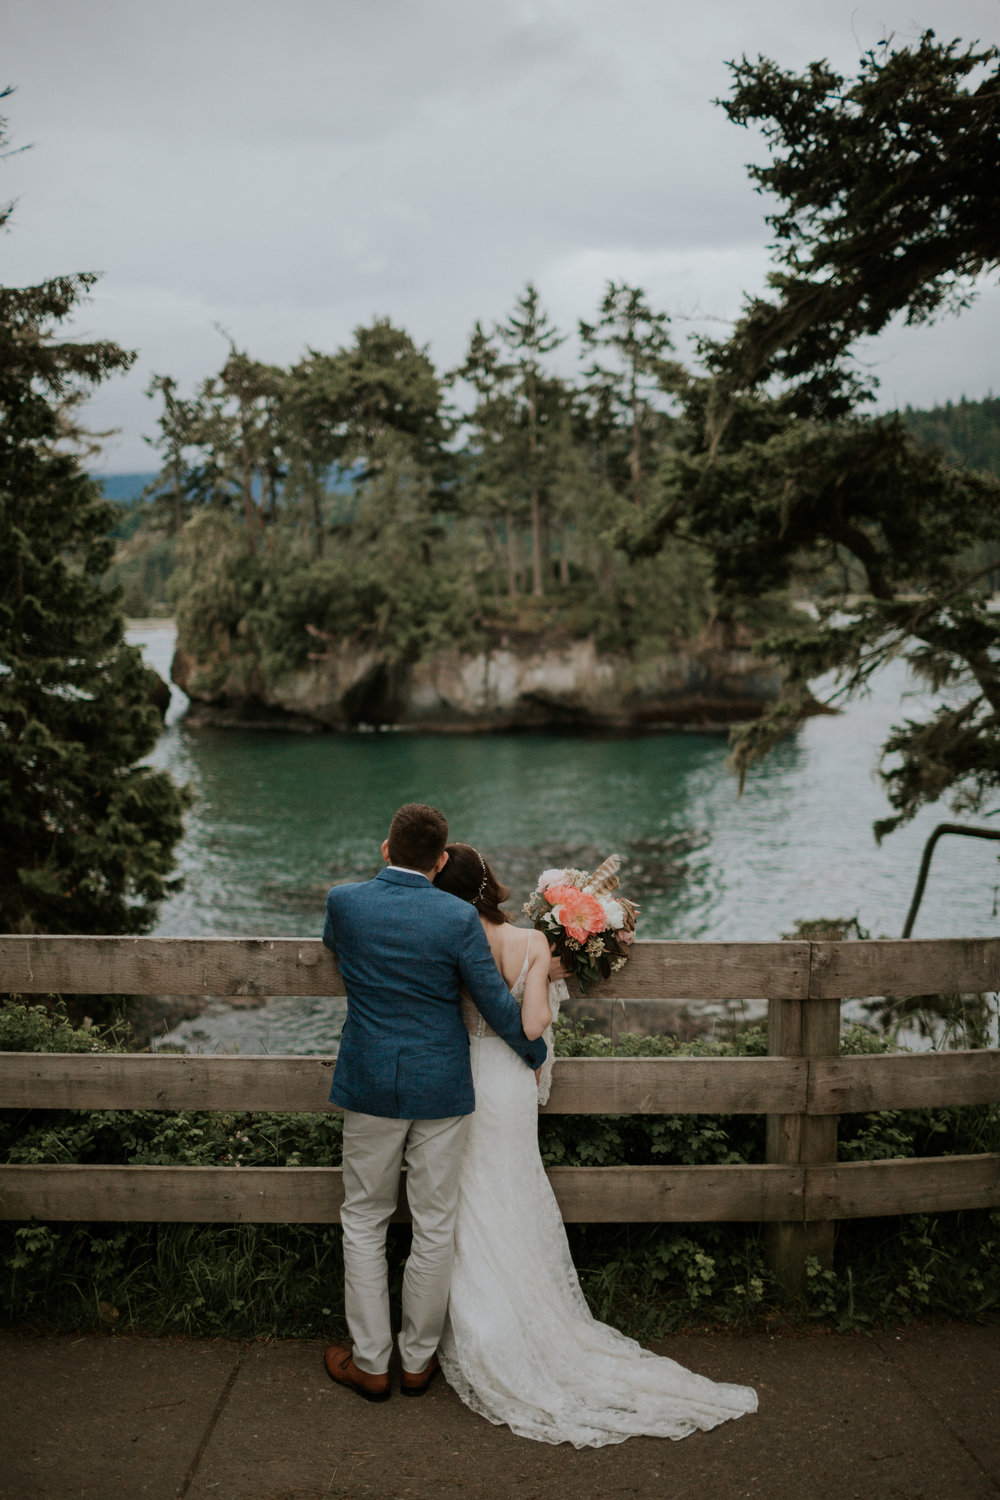 PNW-elopement-wedding-engagement-olympic national park-port angeles-hurricane ridge-lake crescent-kayla dawn photography- photographer-photography-kayladawnphoto-328.jpg